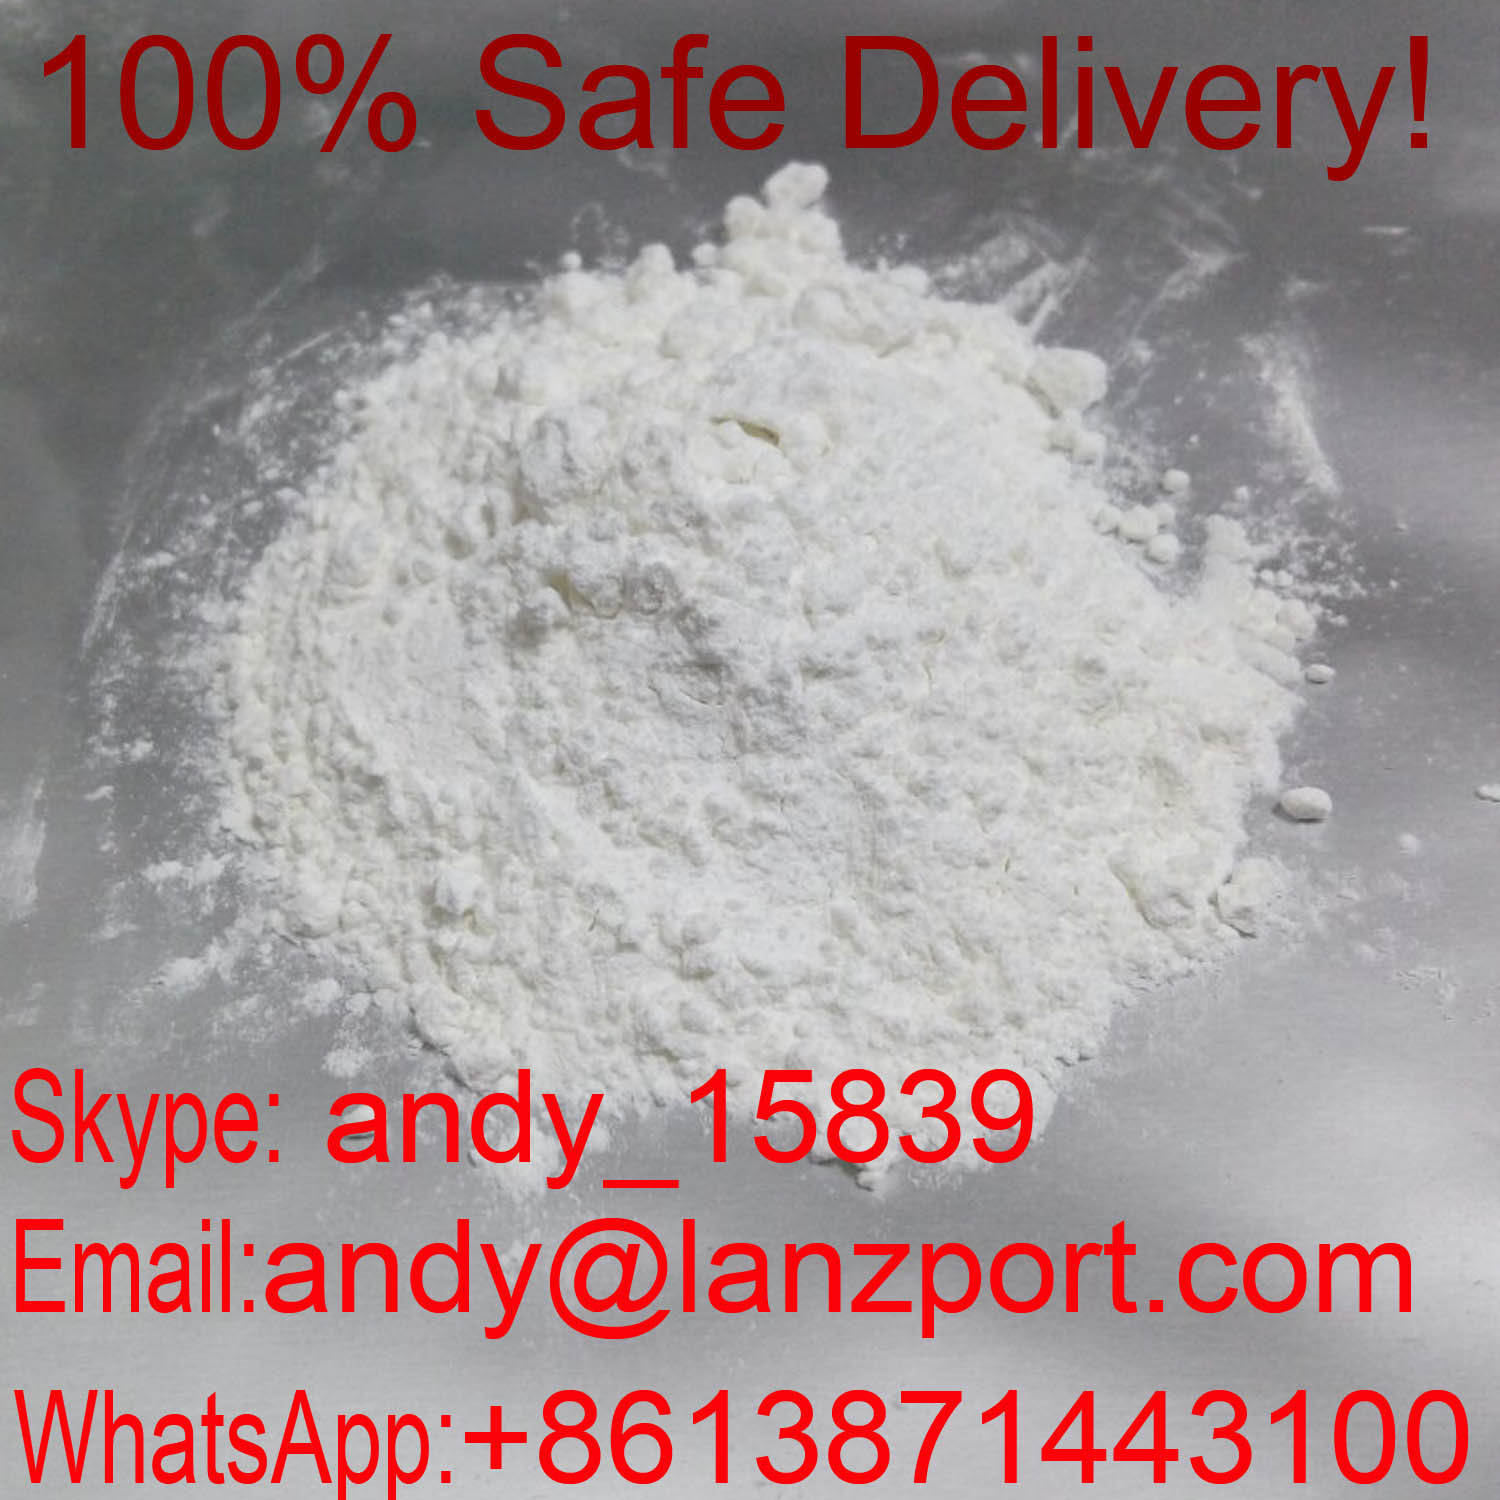 Safe Delivery Methandrostenolone Weight Loss Steroid Dianabol D-Bol 72-63-9